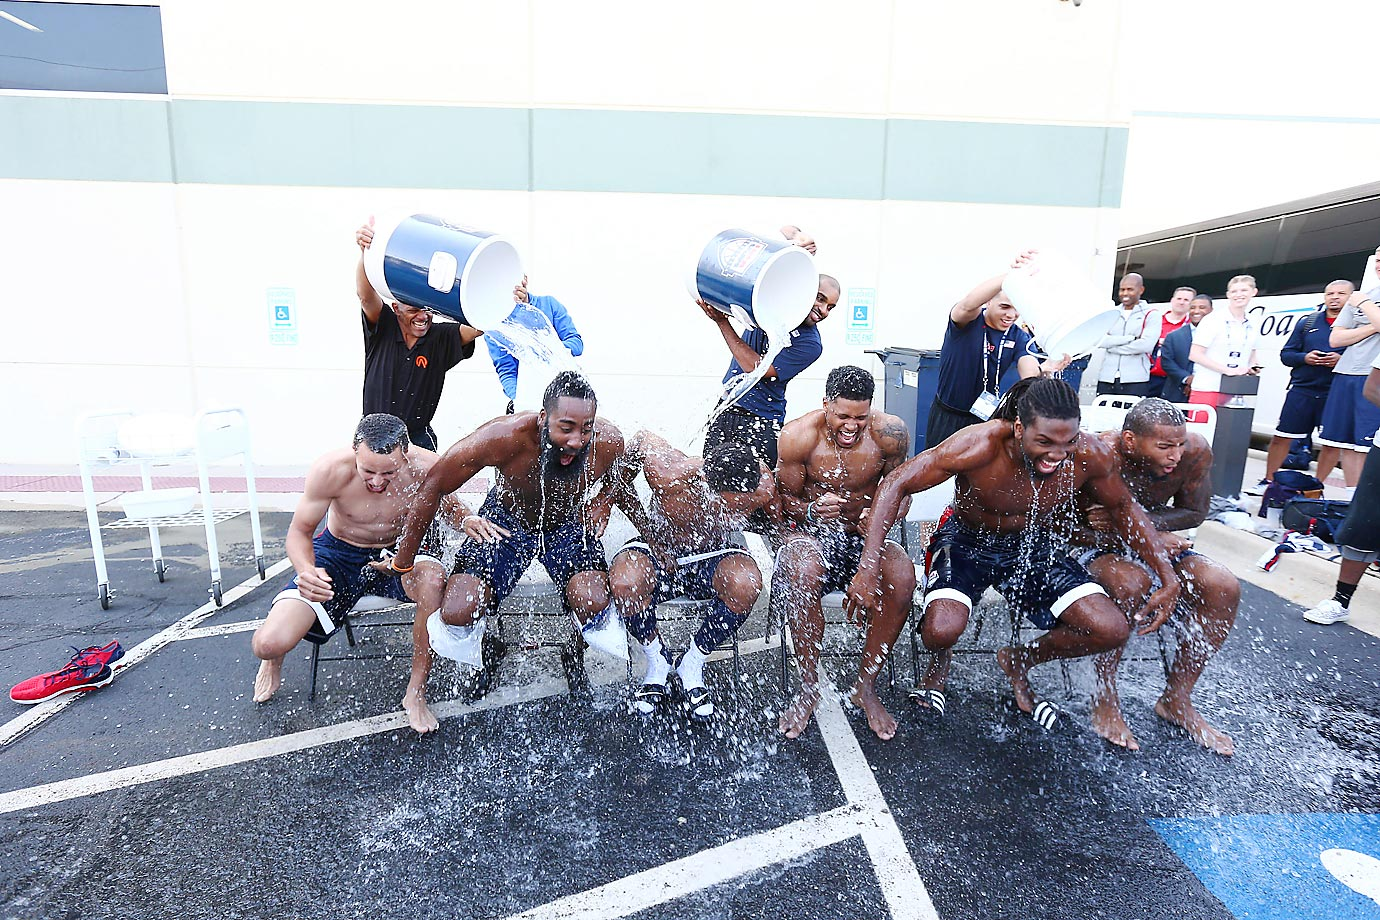 Stephen Curry, James Harden, DerMar DeRozan, Rudy Gay, Kenneth Faried and DeMarcus Cousins of the USA Basketball Men's National Team accept the ALS Ice Bucket Challenge.